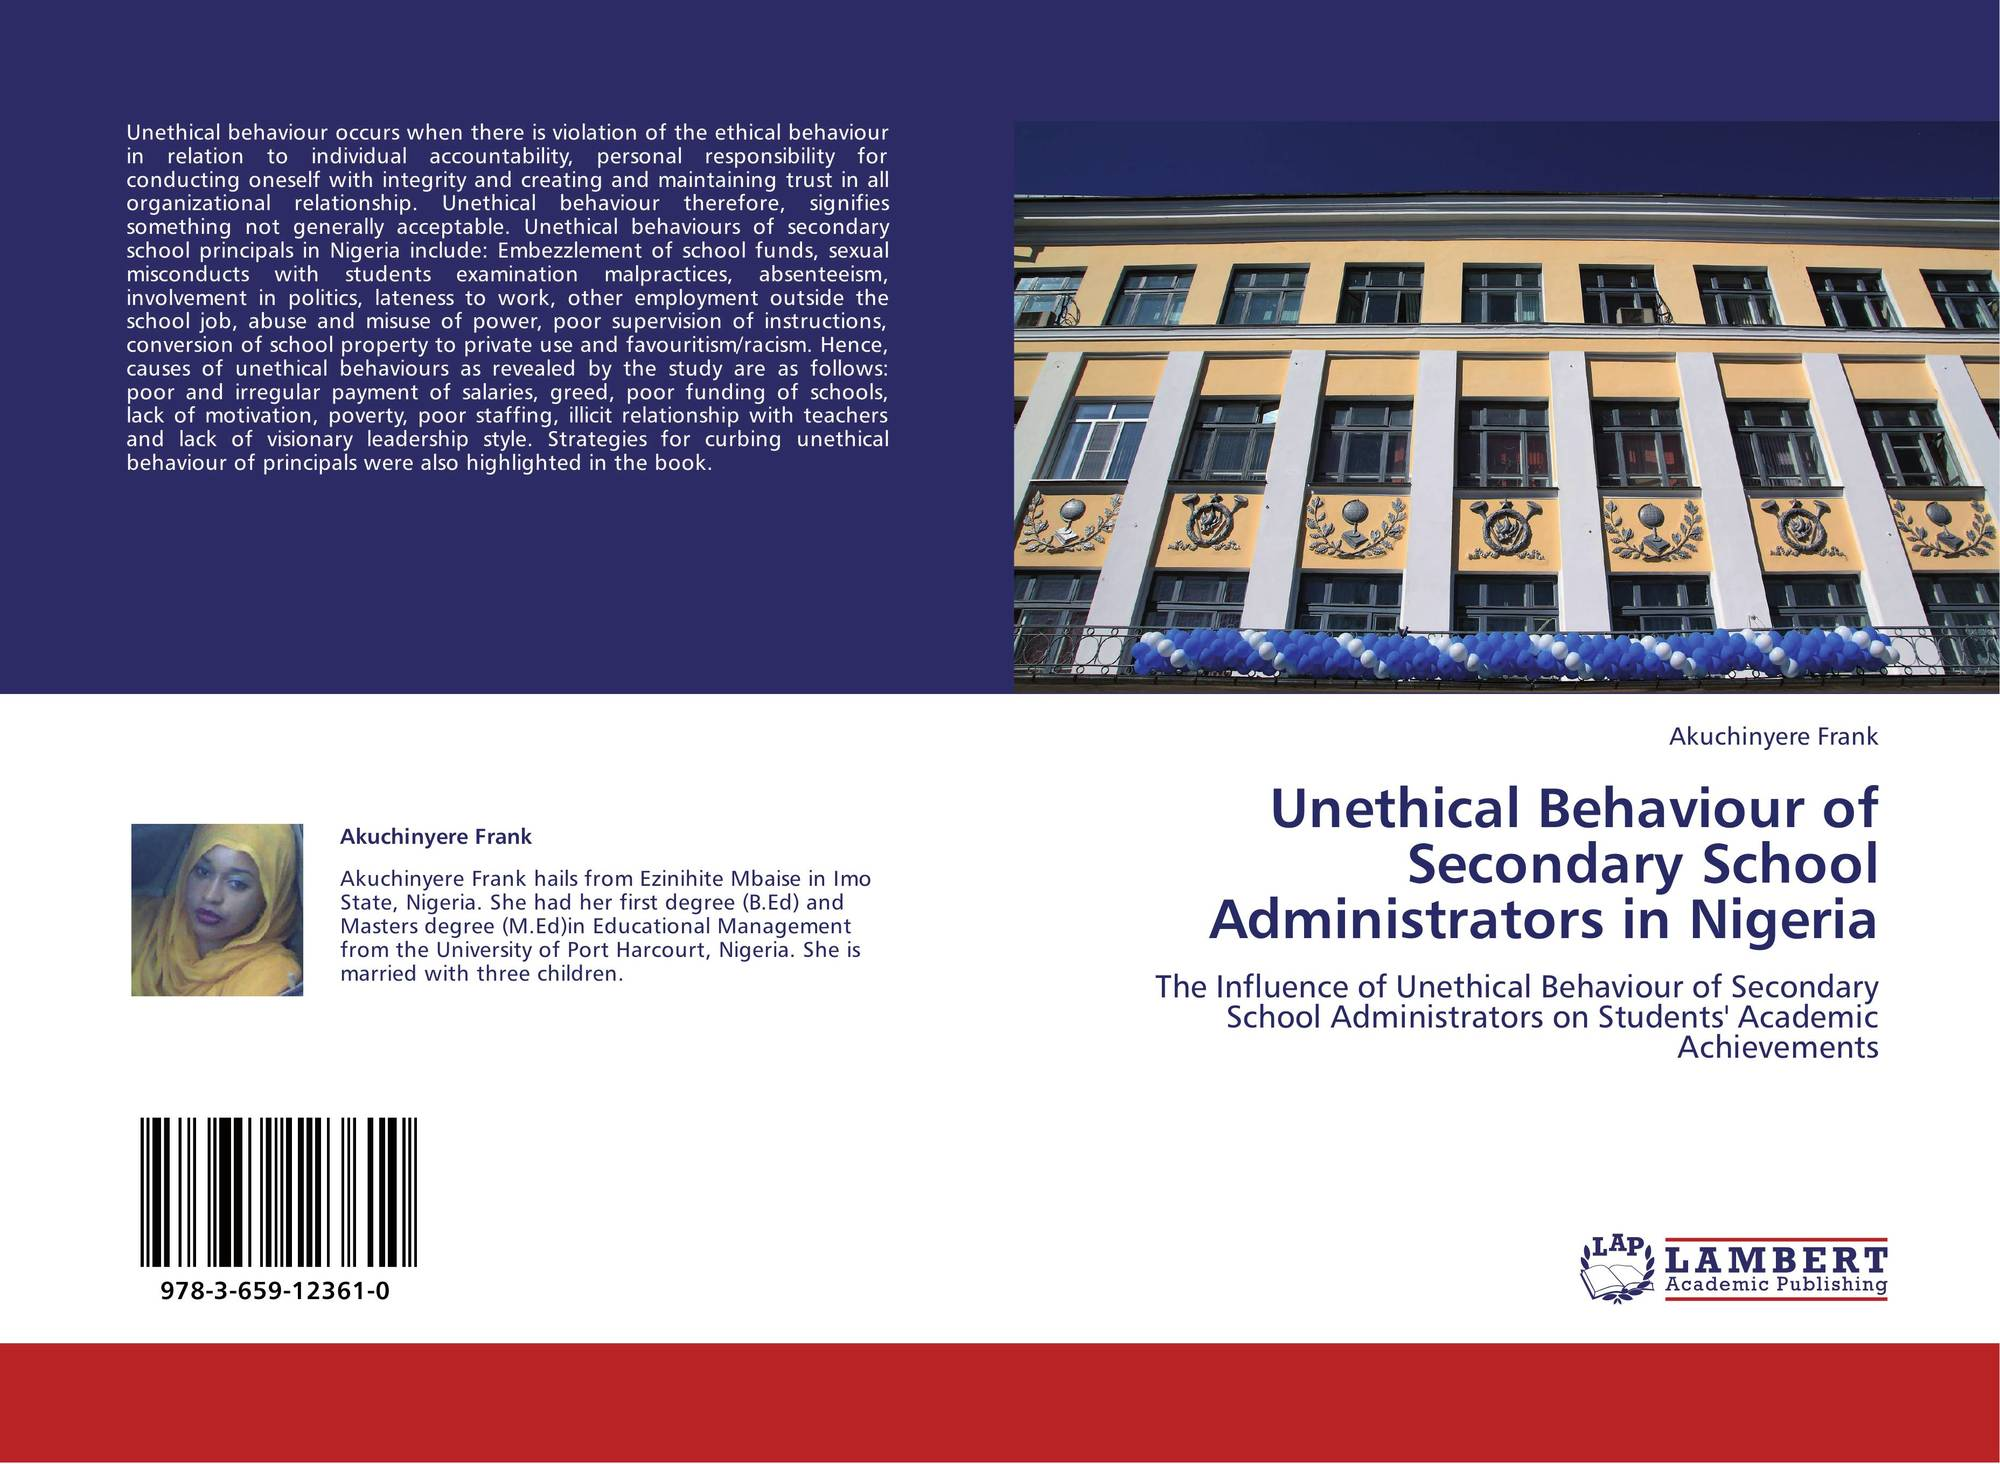 an analysis of chapter one of unethical behaviors in organizations Unethical behavior is an action that falls outside of what is considered morally right or proper for a person, a profession or an industry individuals can behave unethically, as can businesses, professionals and politicians.